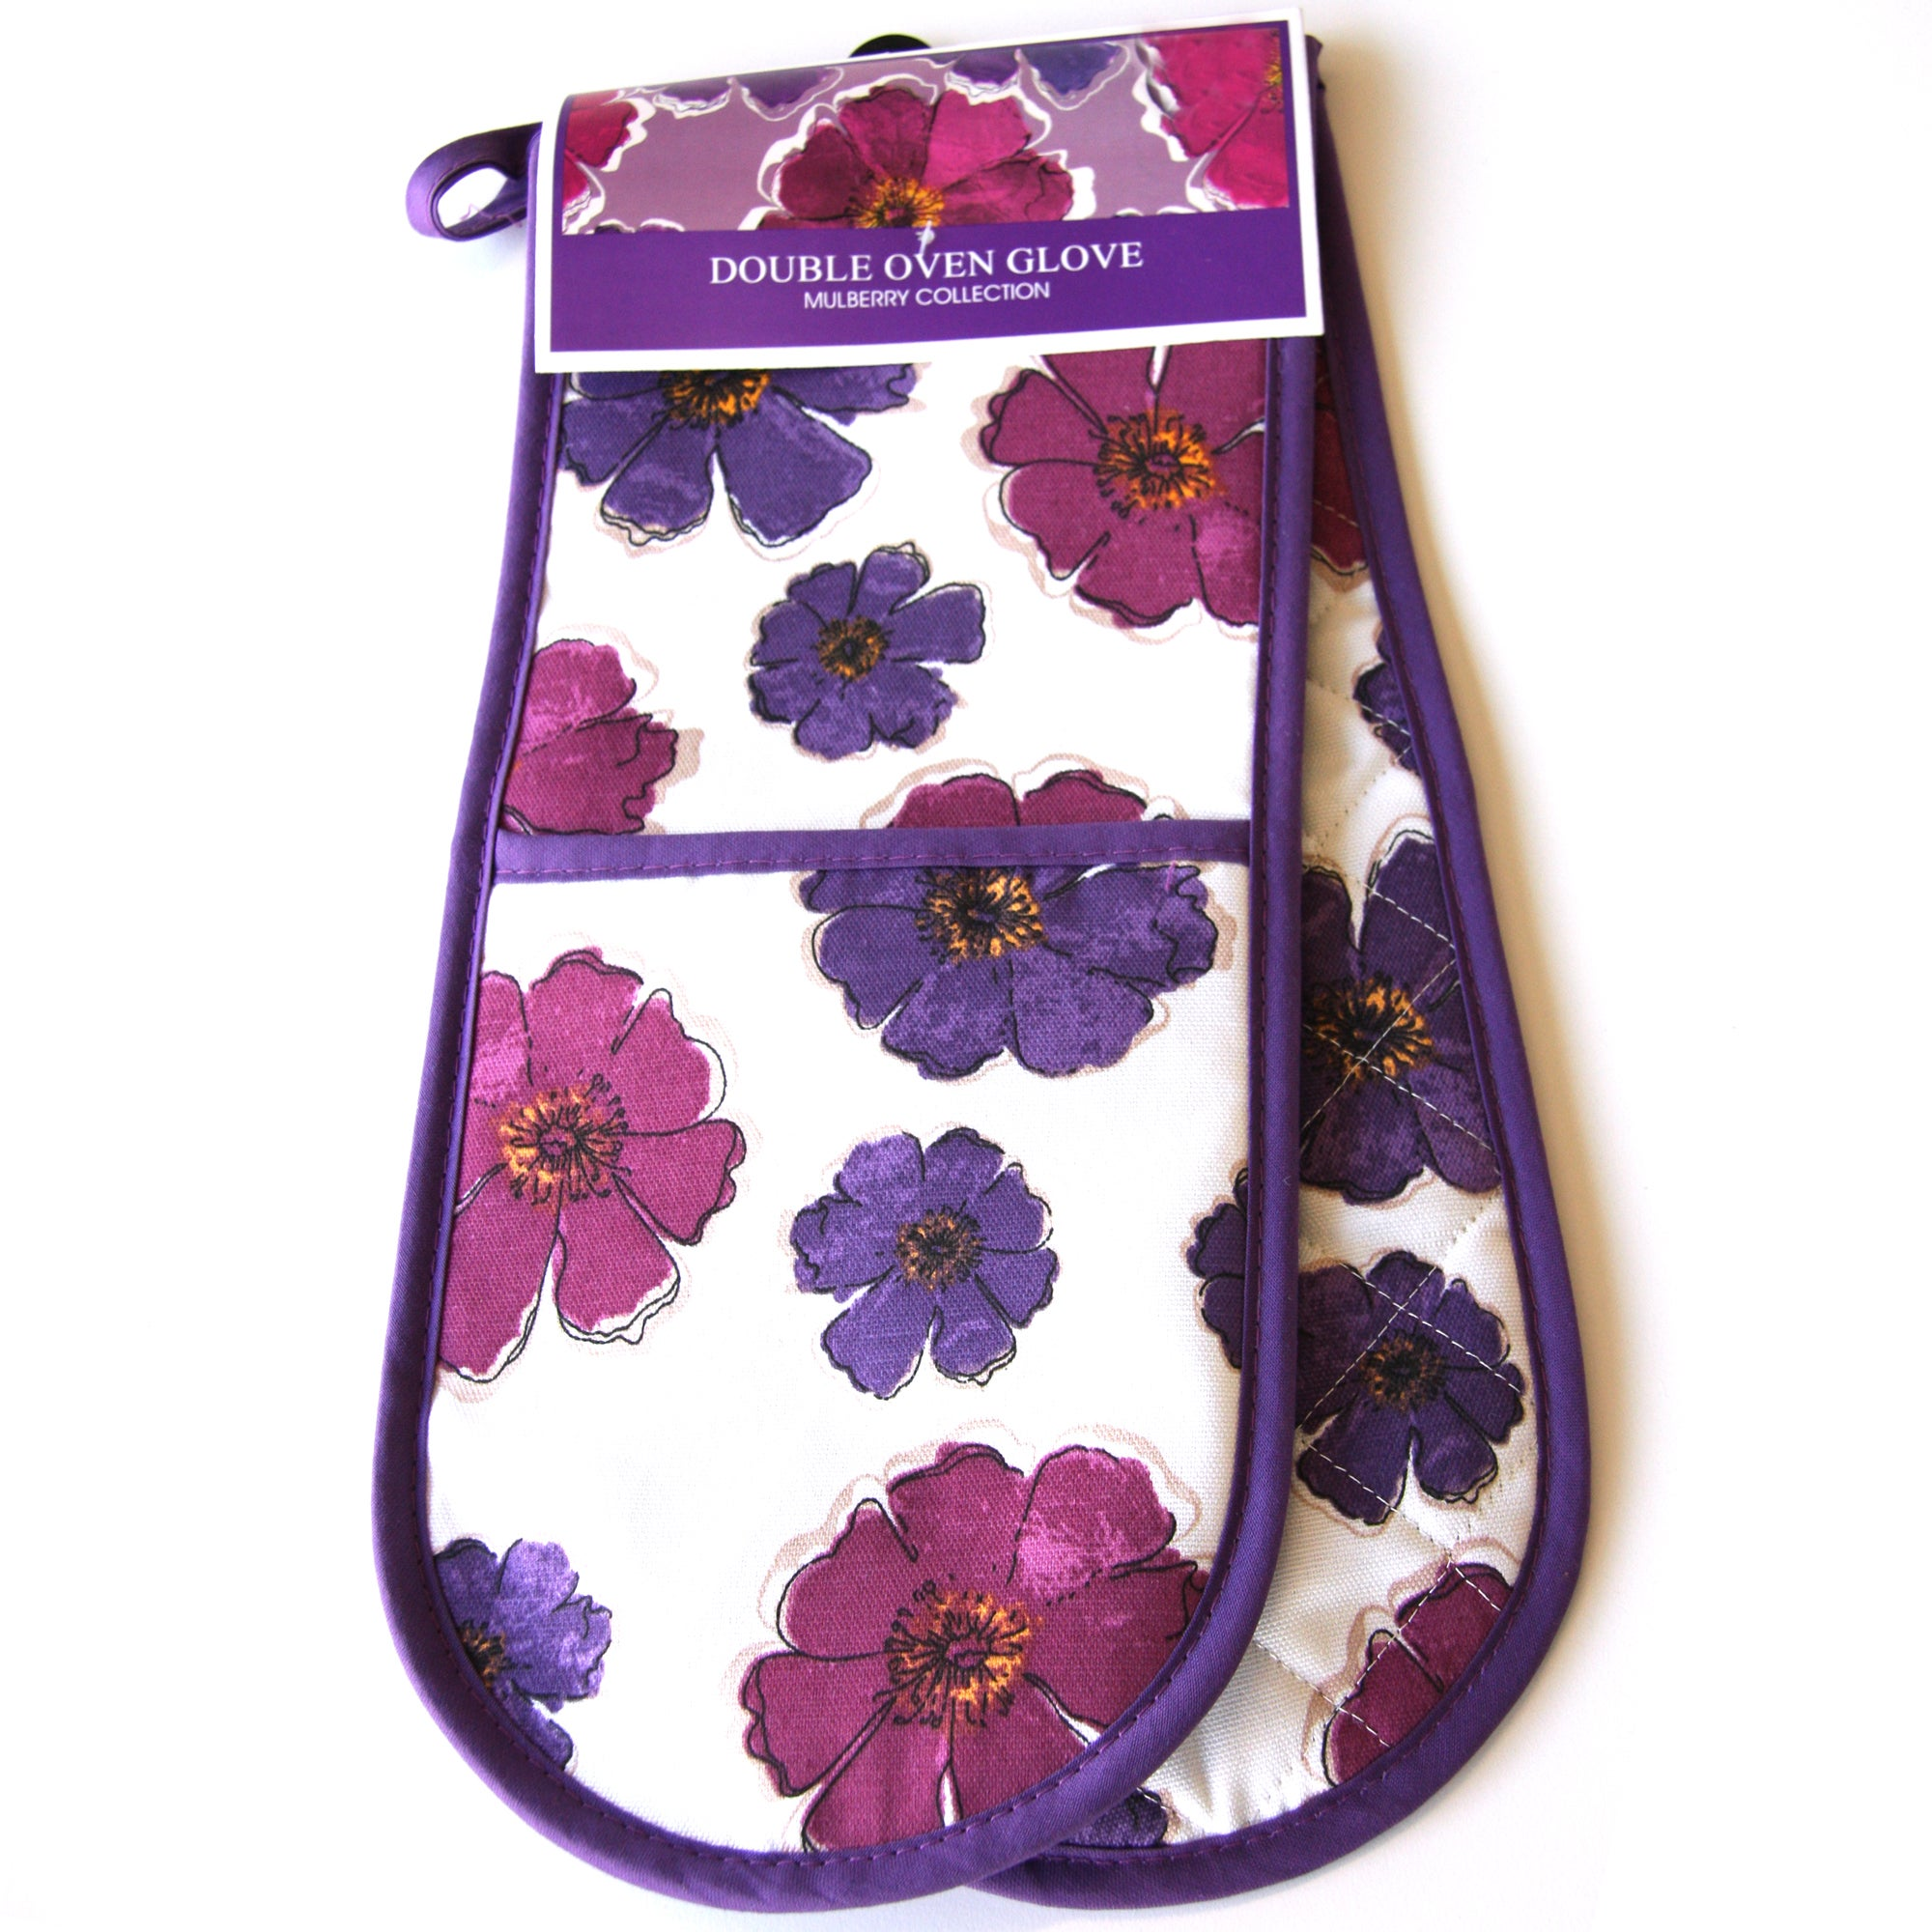 Mulberry Flower Collection Double Oven Glove